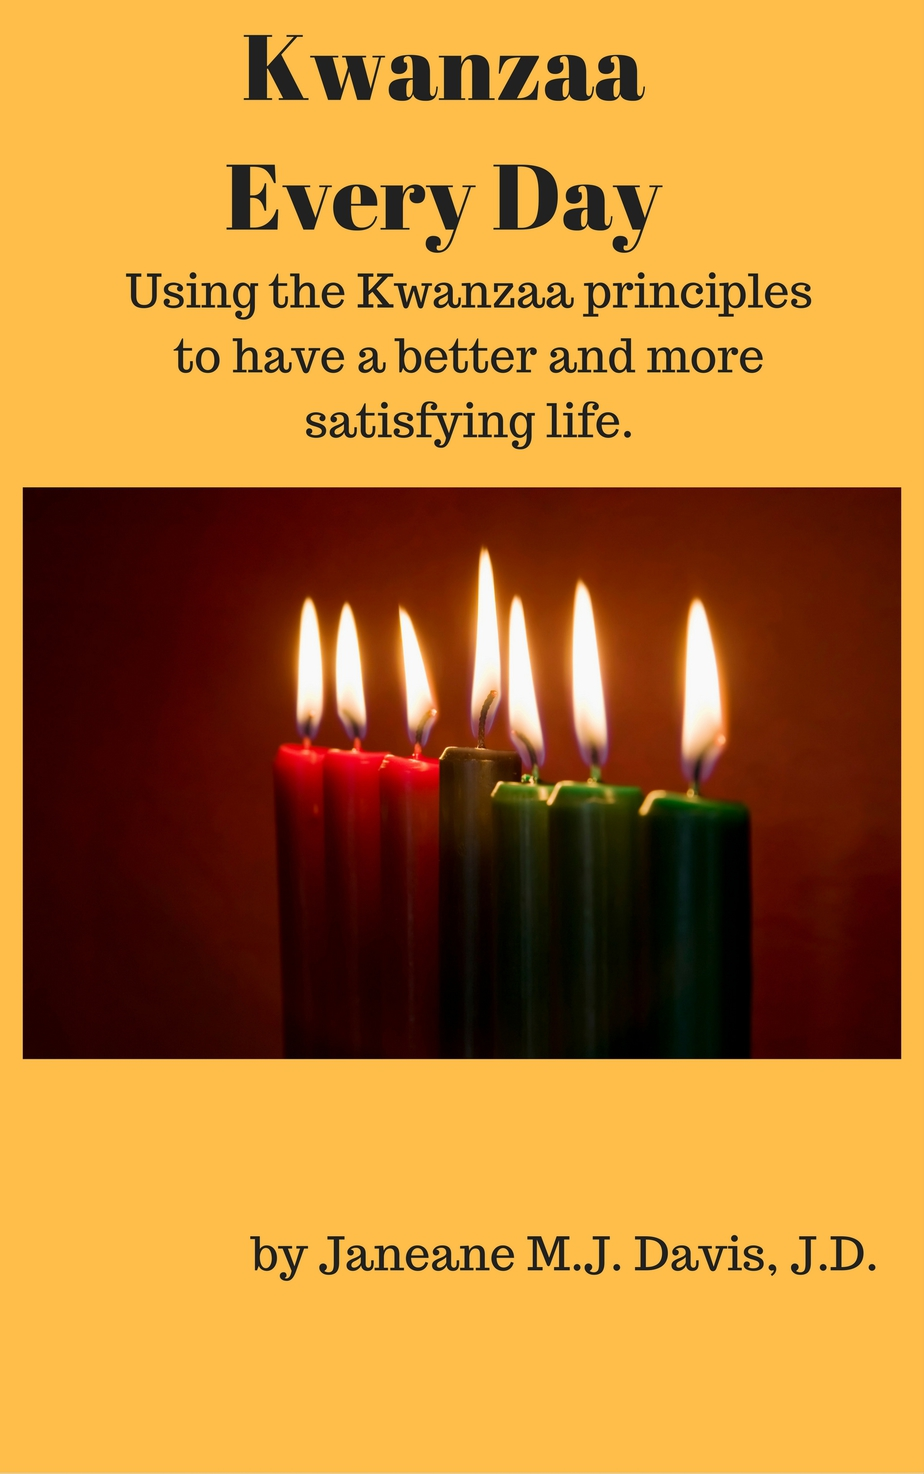 Kwanzaa Every Day